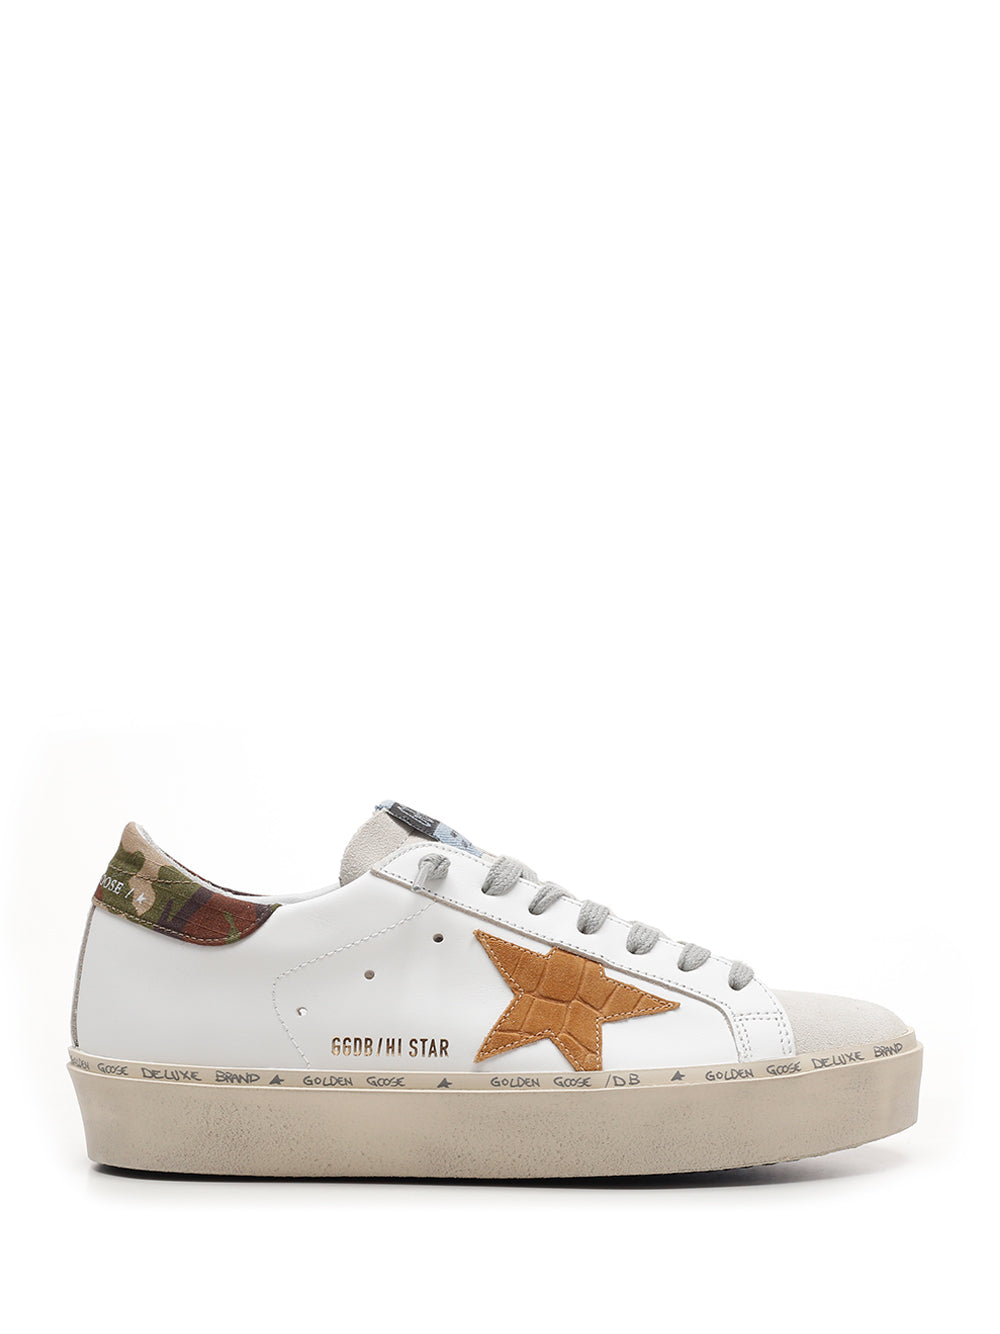 Golden Goose GOLDEN GOOSE DELUXE BRAND HI STAR SNEAKERS